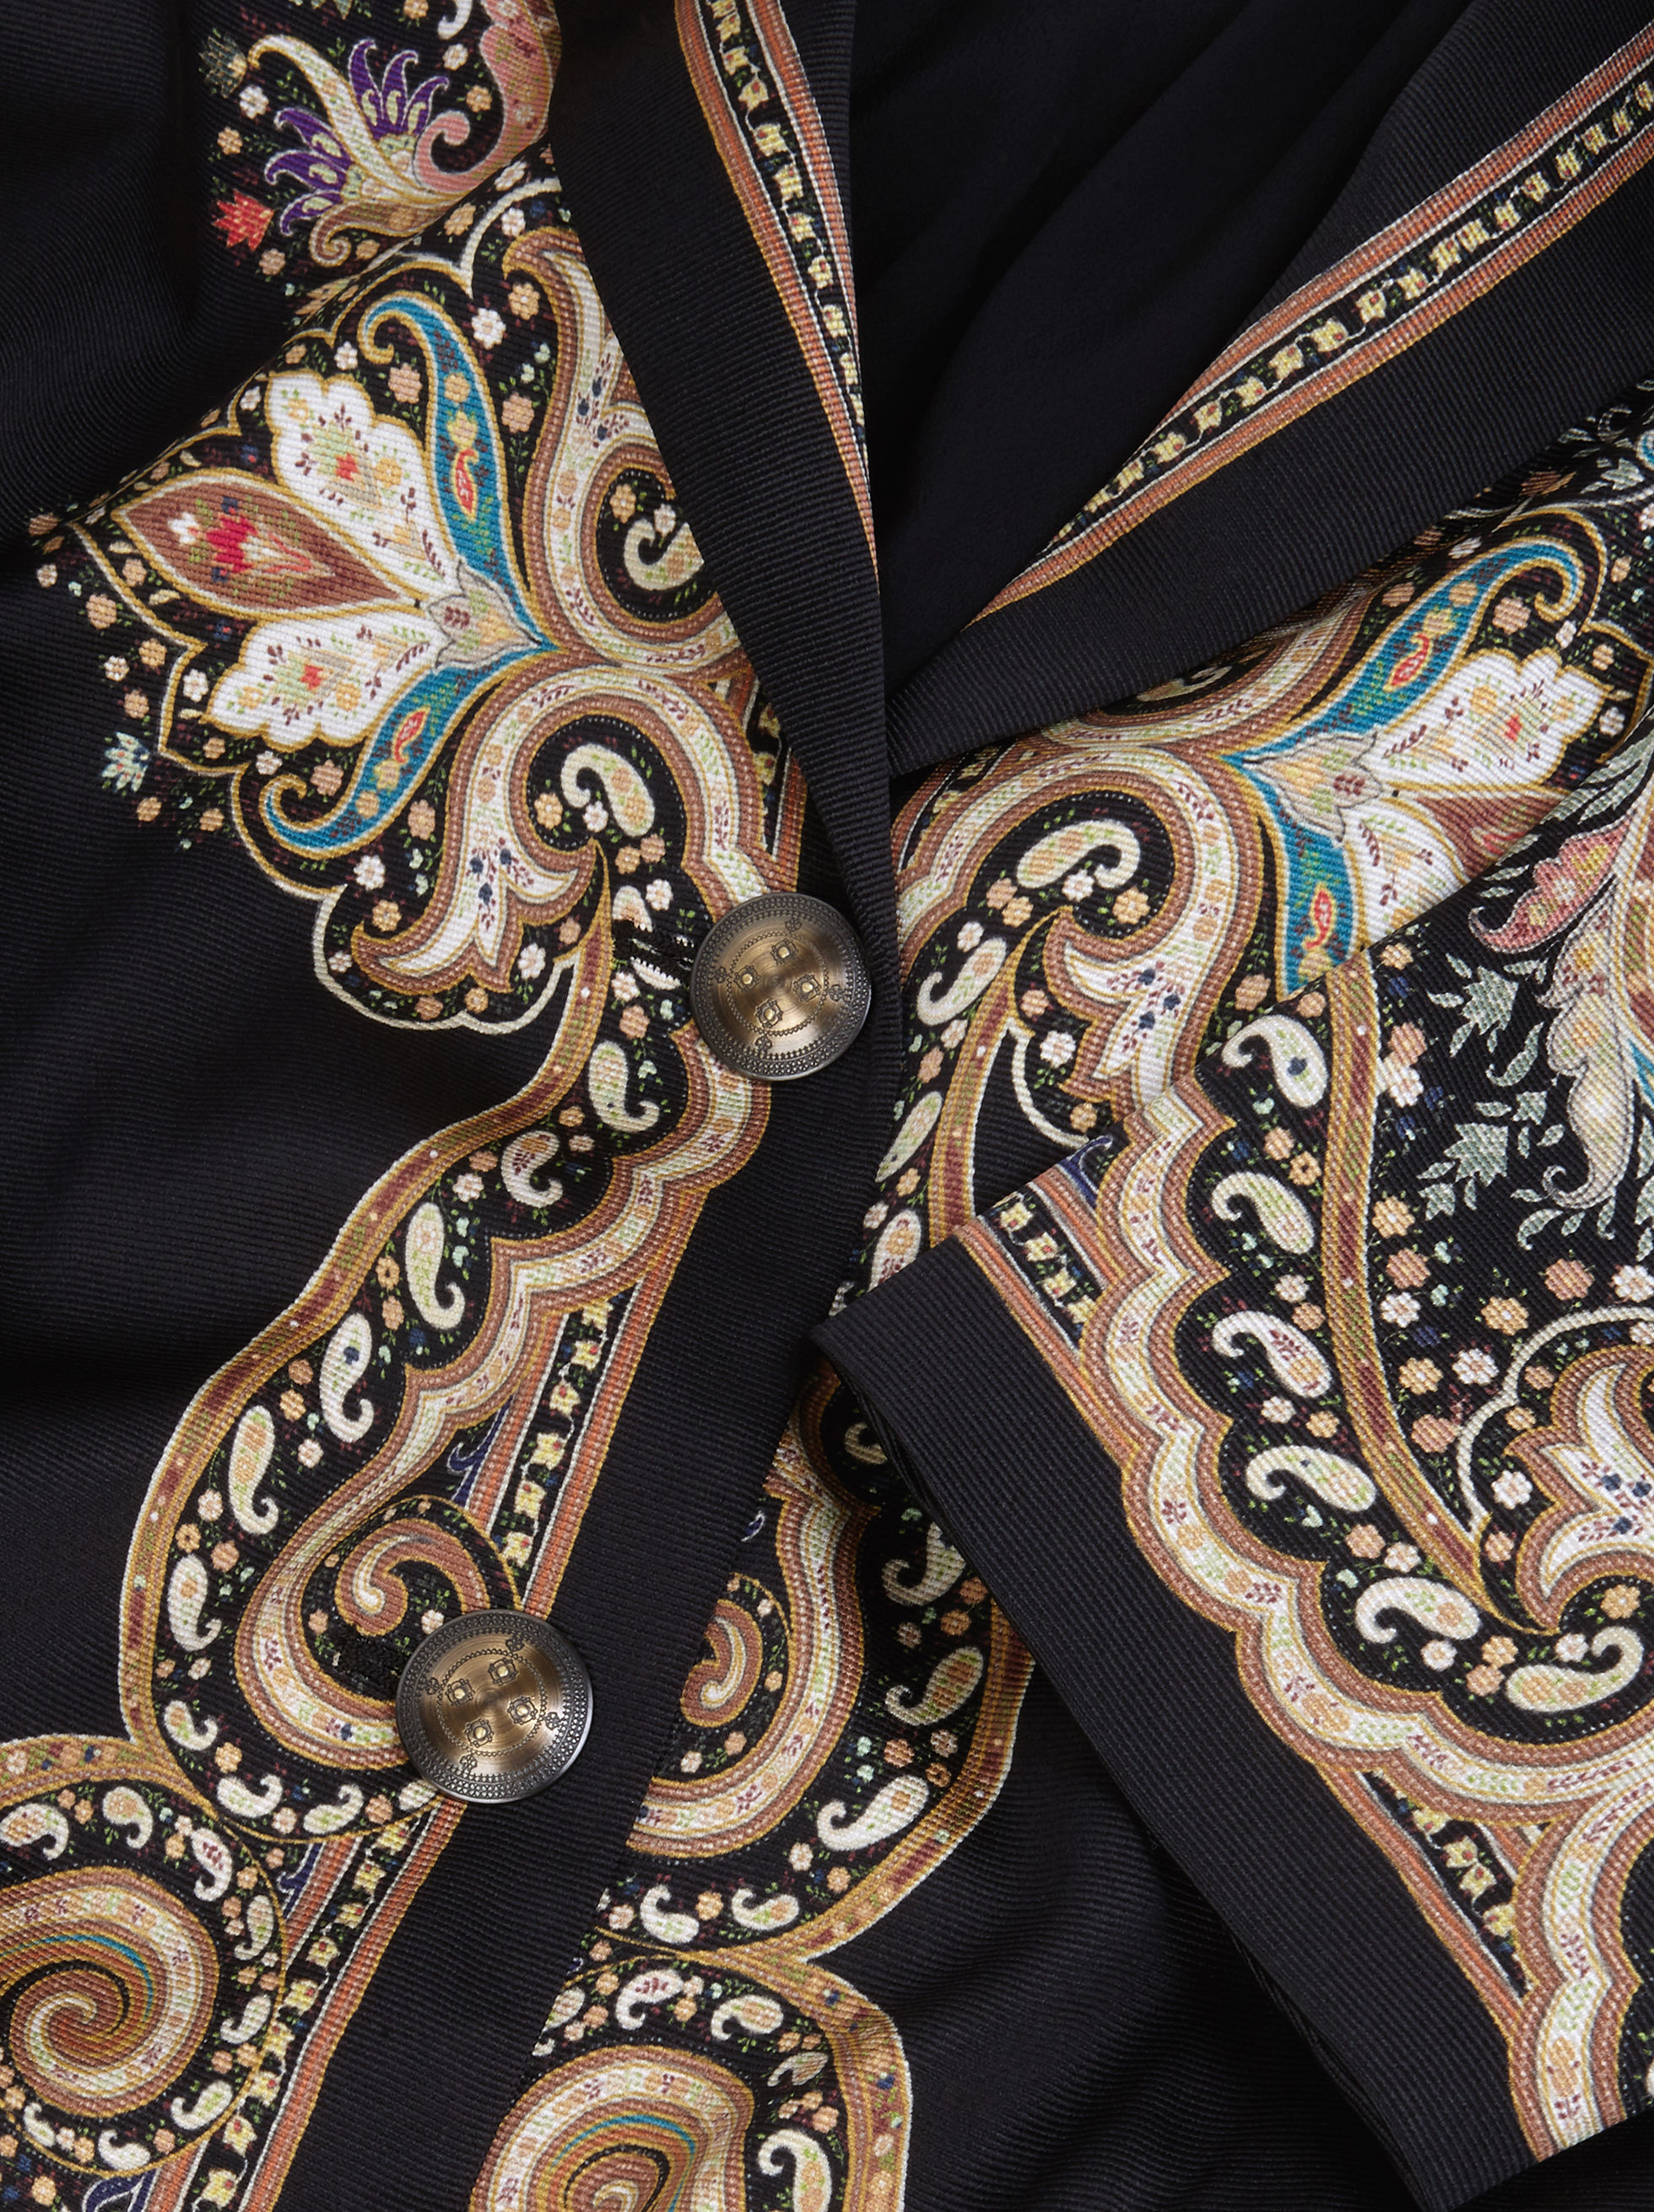 SILK COAT WITH FLORAL PAISLEY PATTERNS